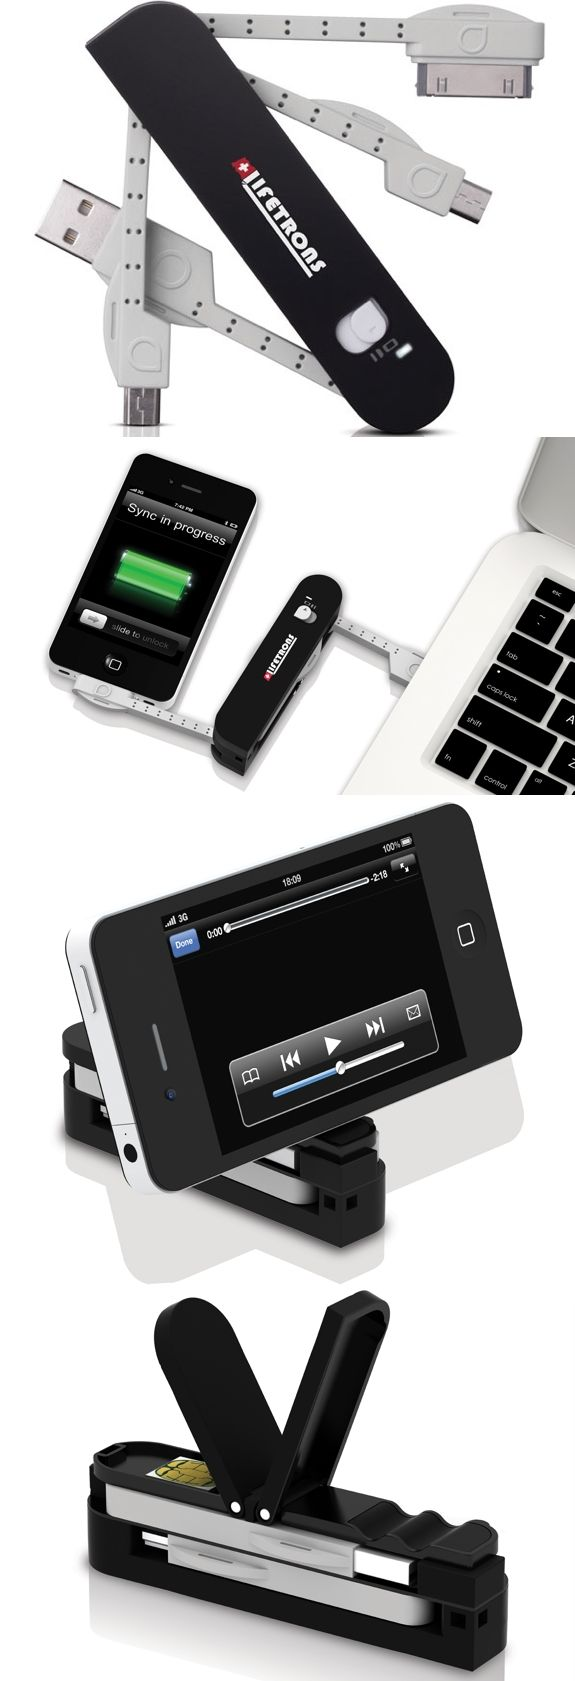 Lifetrons Multi-Tool Adaptor - 1 of 5 cool gift ideas for tech-loving travelers featured on Spot Cool Stuff:  http://tech.spotcoolstuff.com/travel-gadget-review/tech-loving-gift-guide